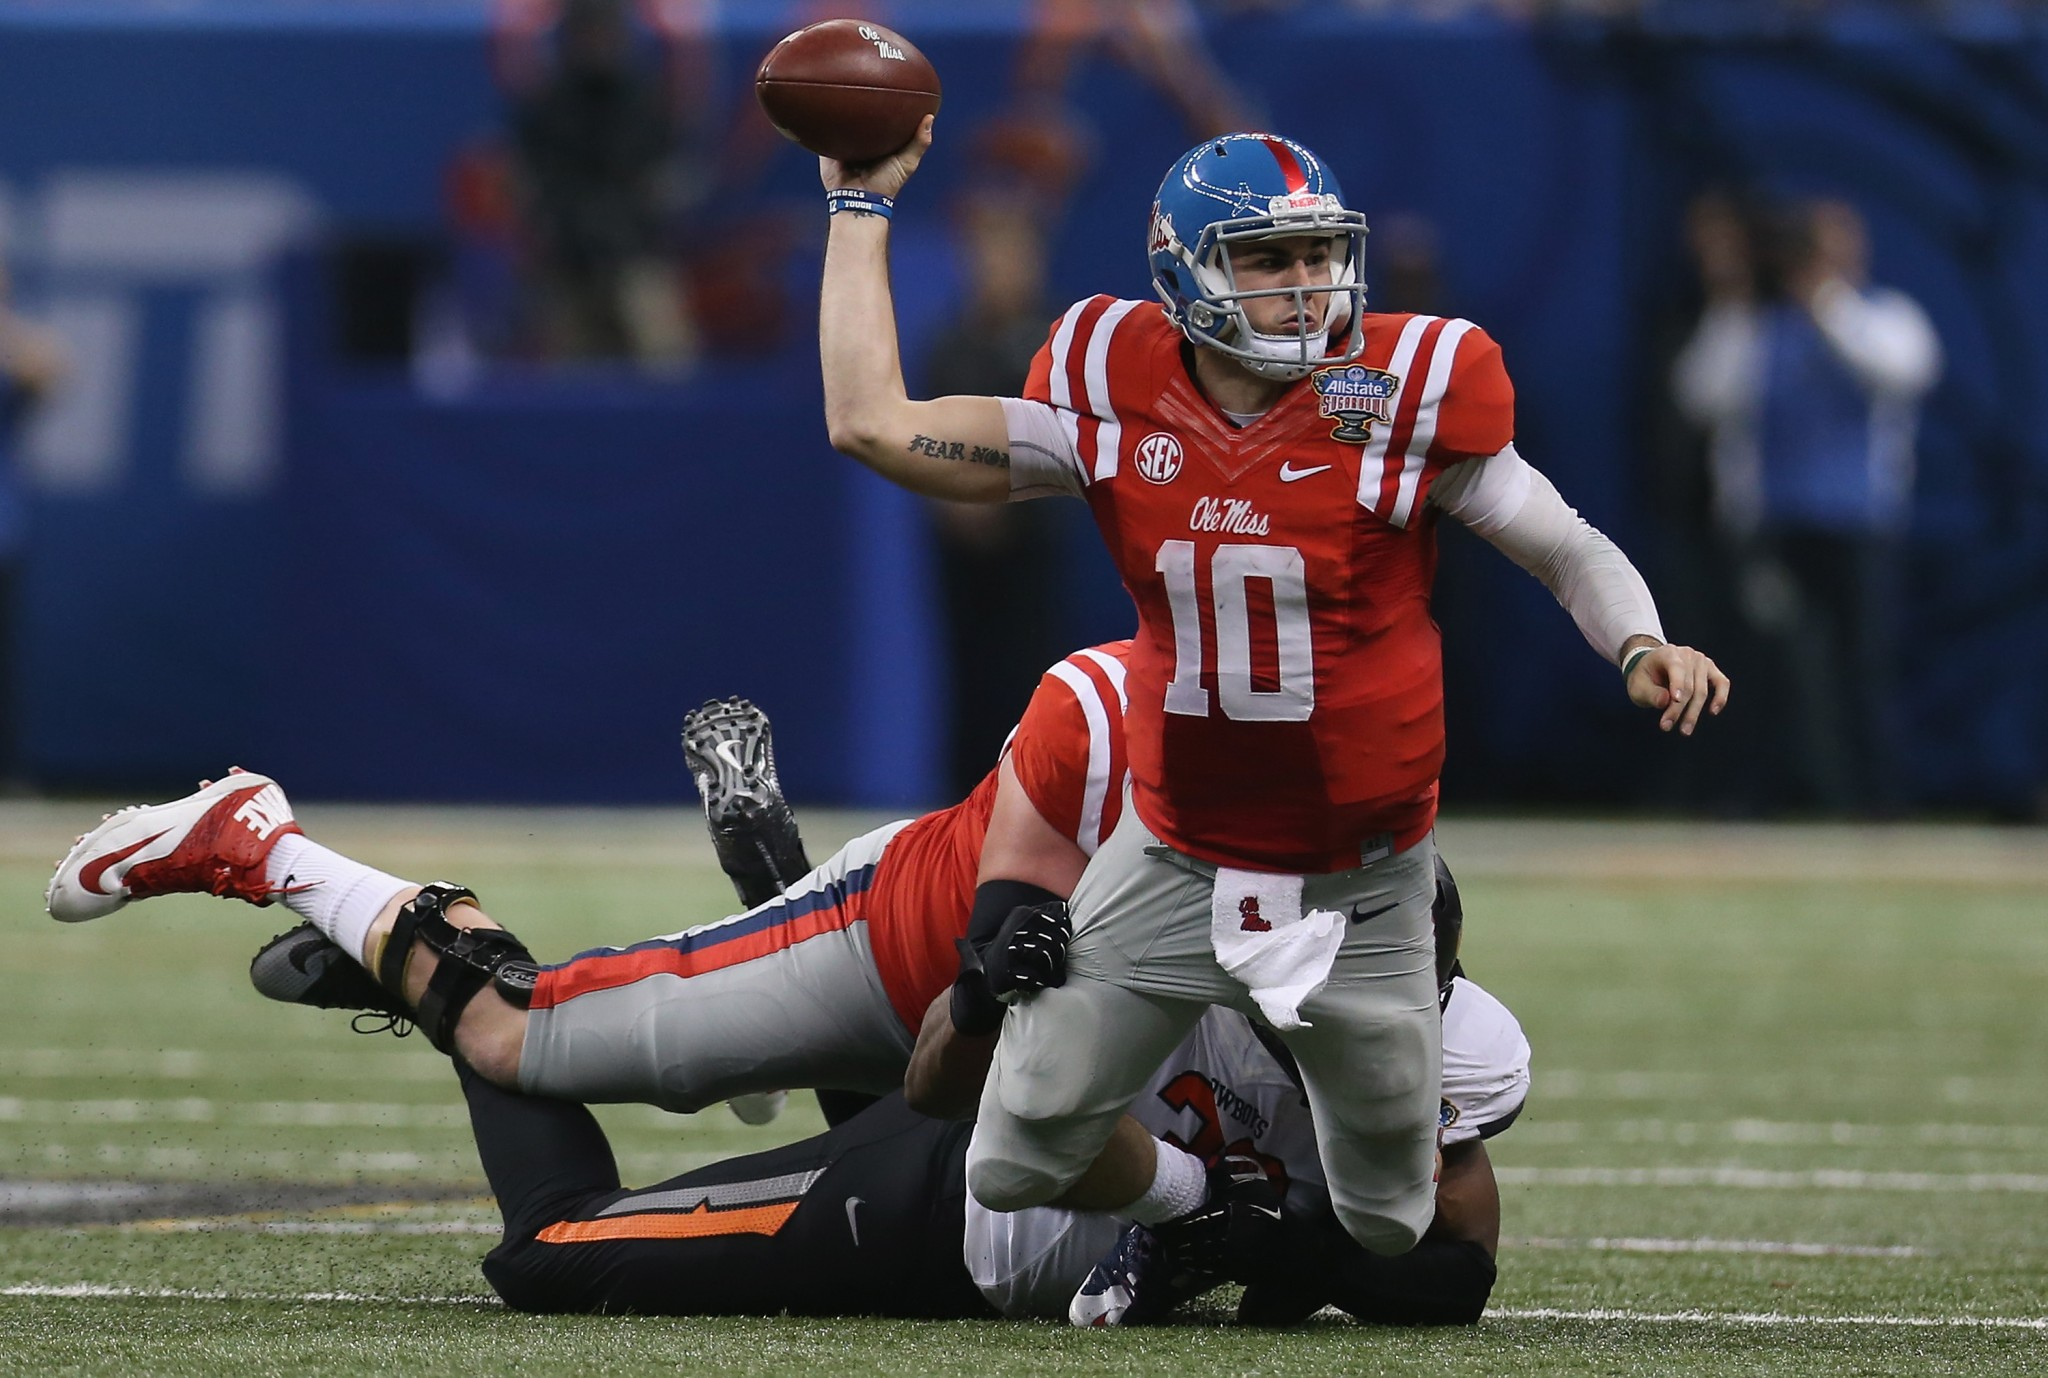 Ole Miss QB Chad Kelly (Getty Images)